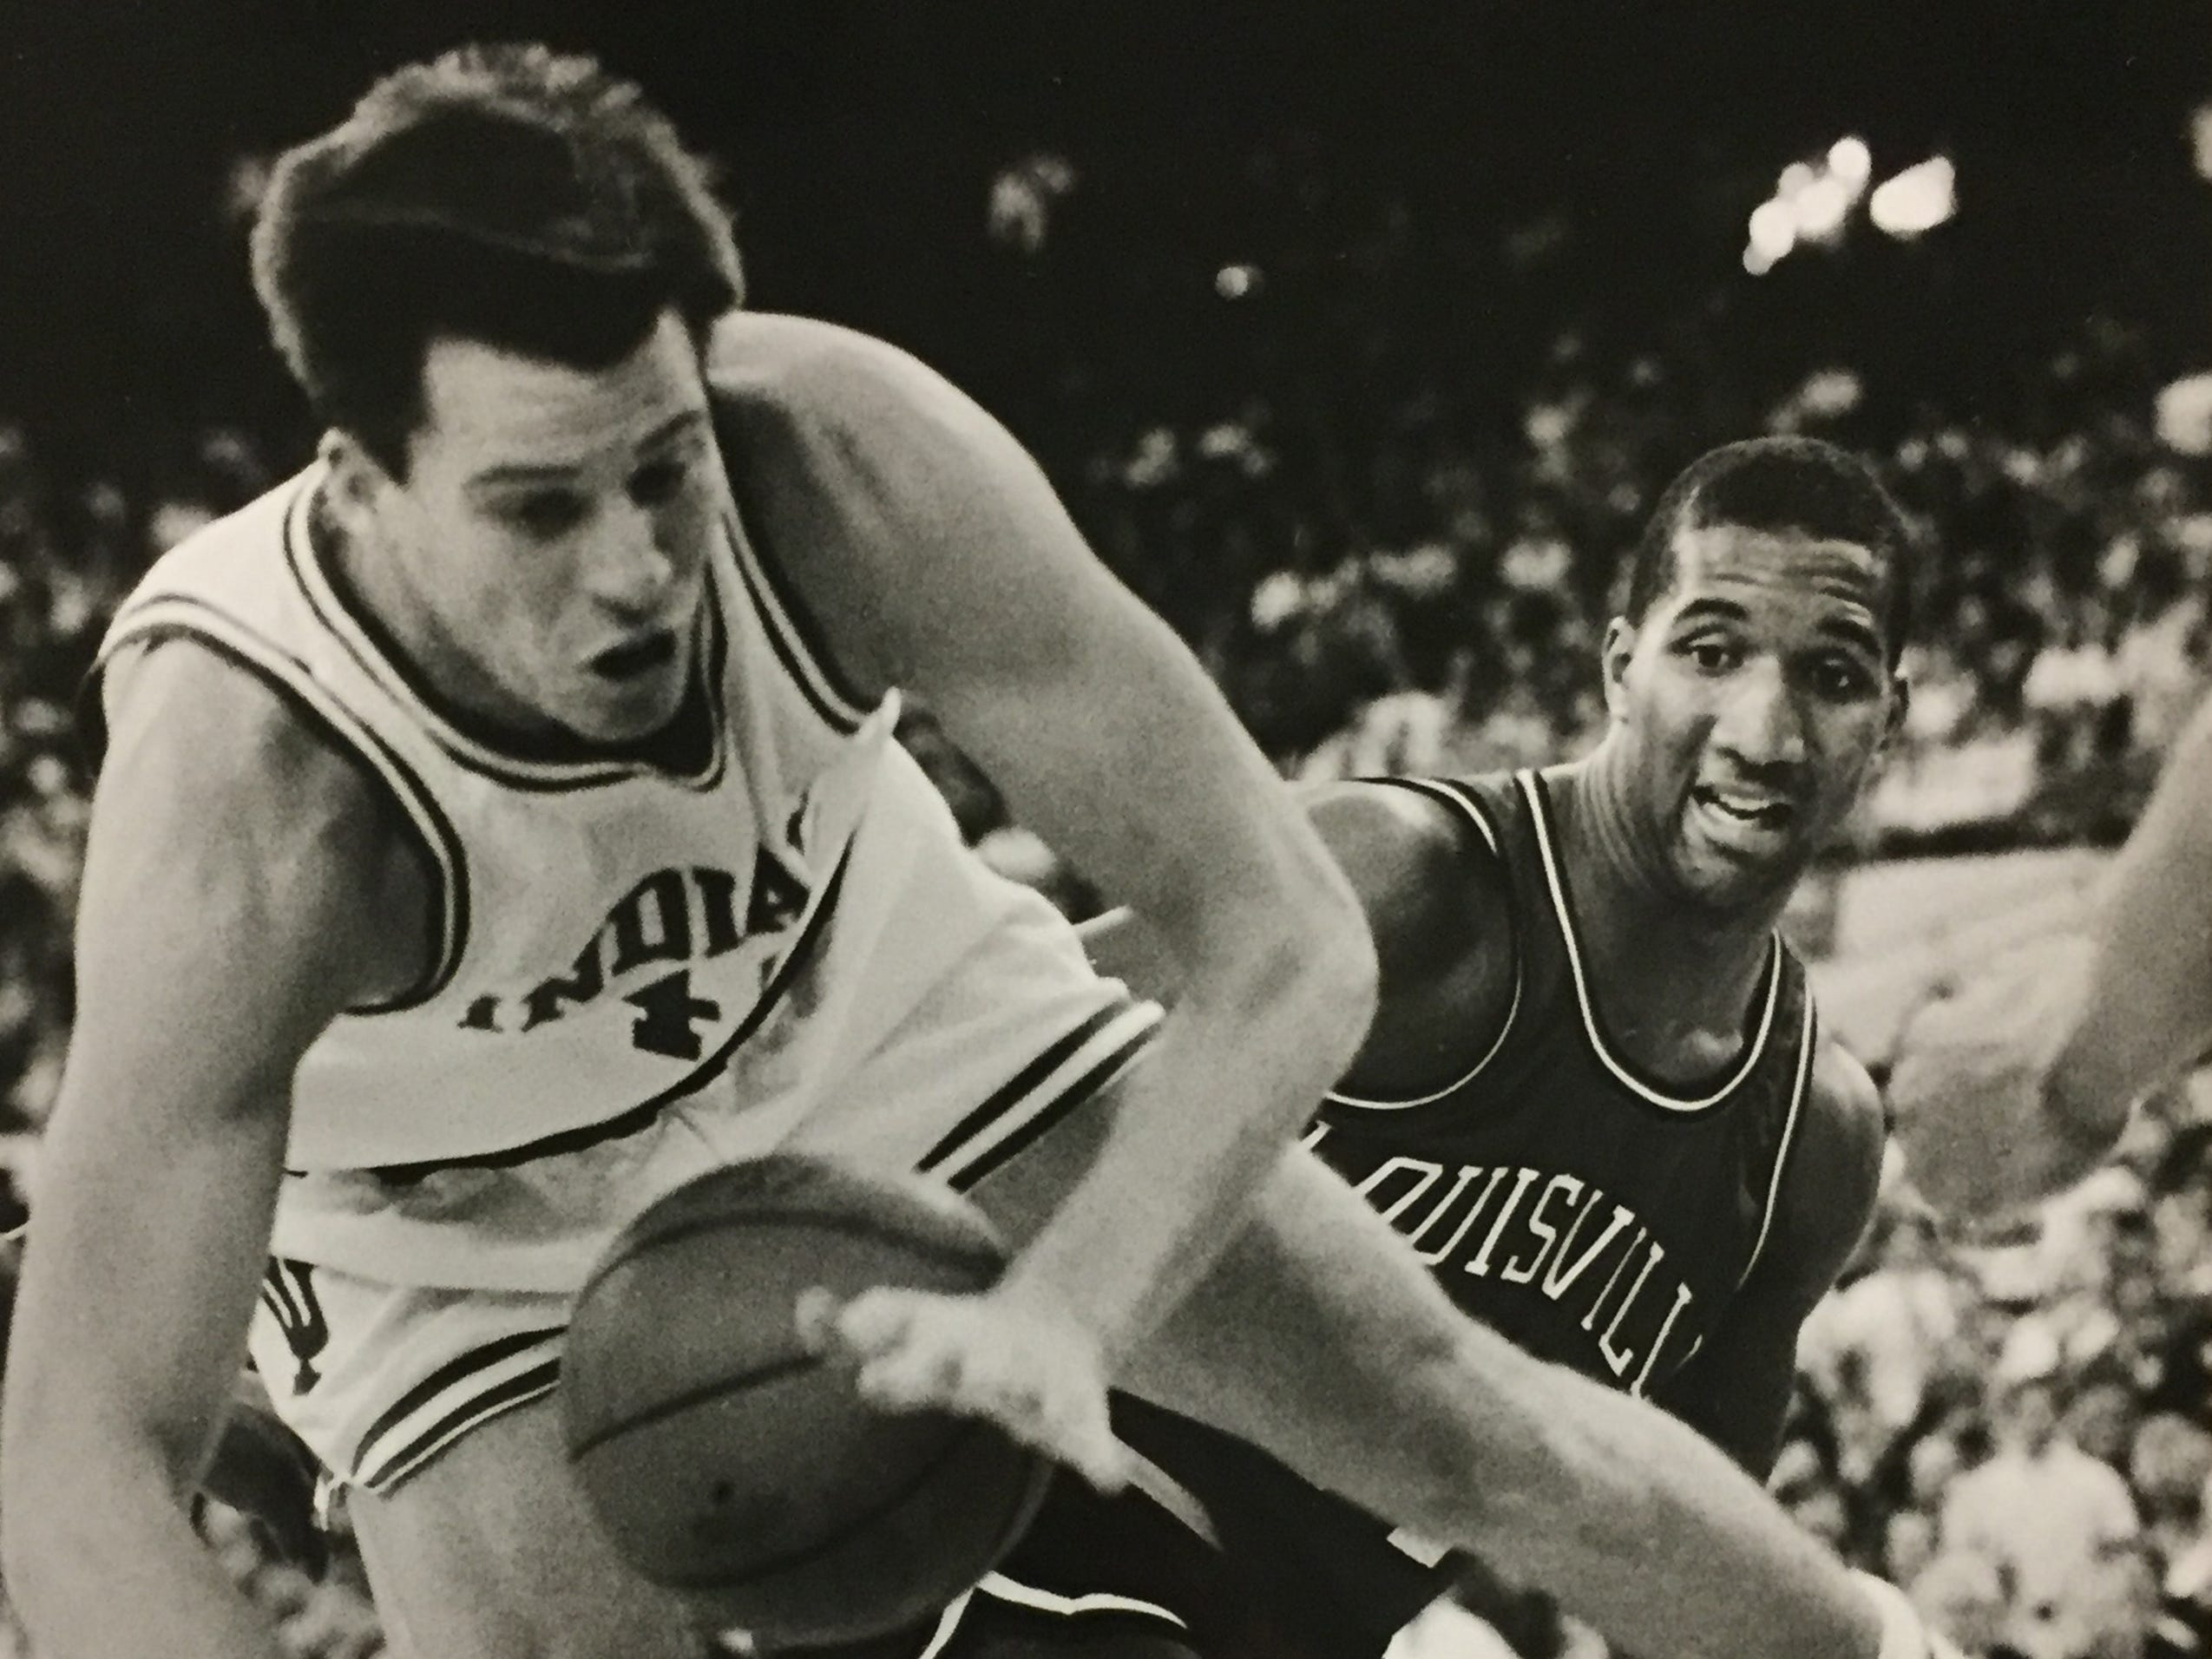 Indiana's Brian Sloan is fouled as he shoots by Louisville's James Brewer during the first half of the Big Four Classic in the Hoosier Dome, Dec. 3, 1988.